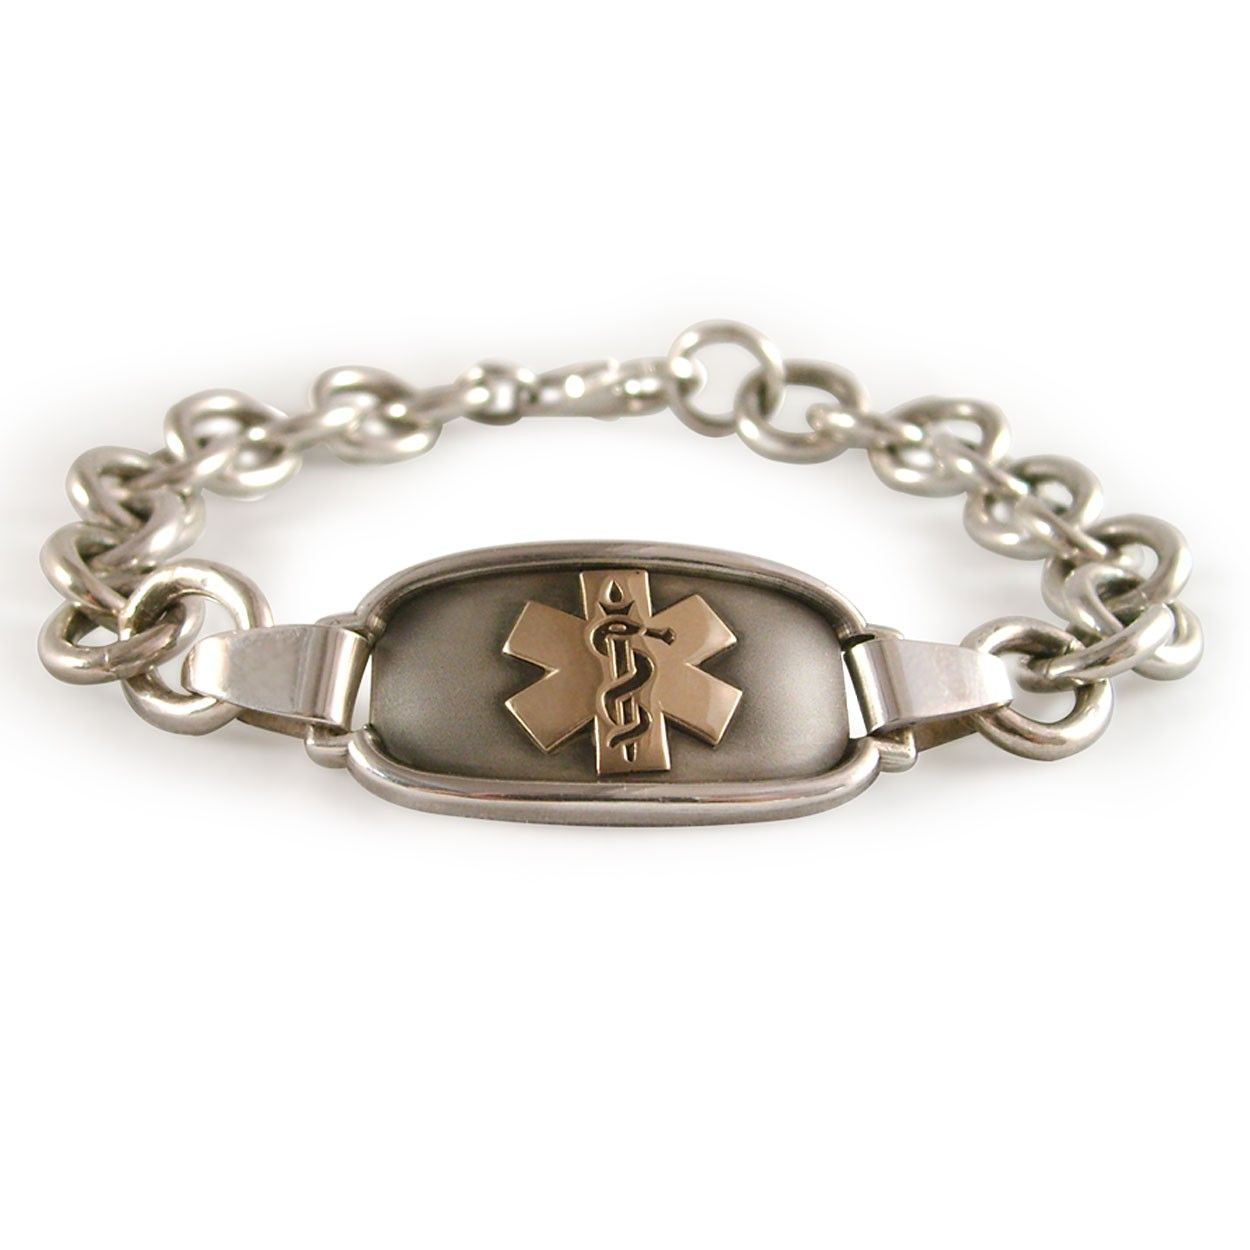 Simple cable chain medical id bracelet for women in gold or silver